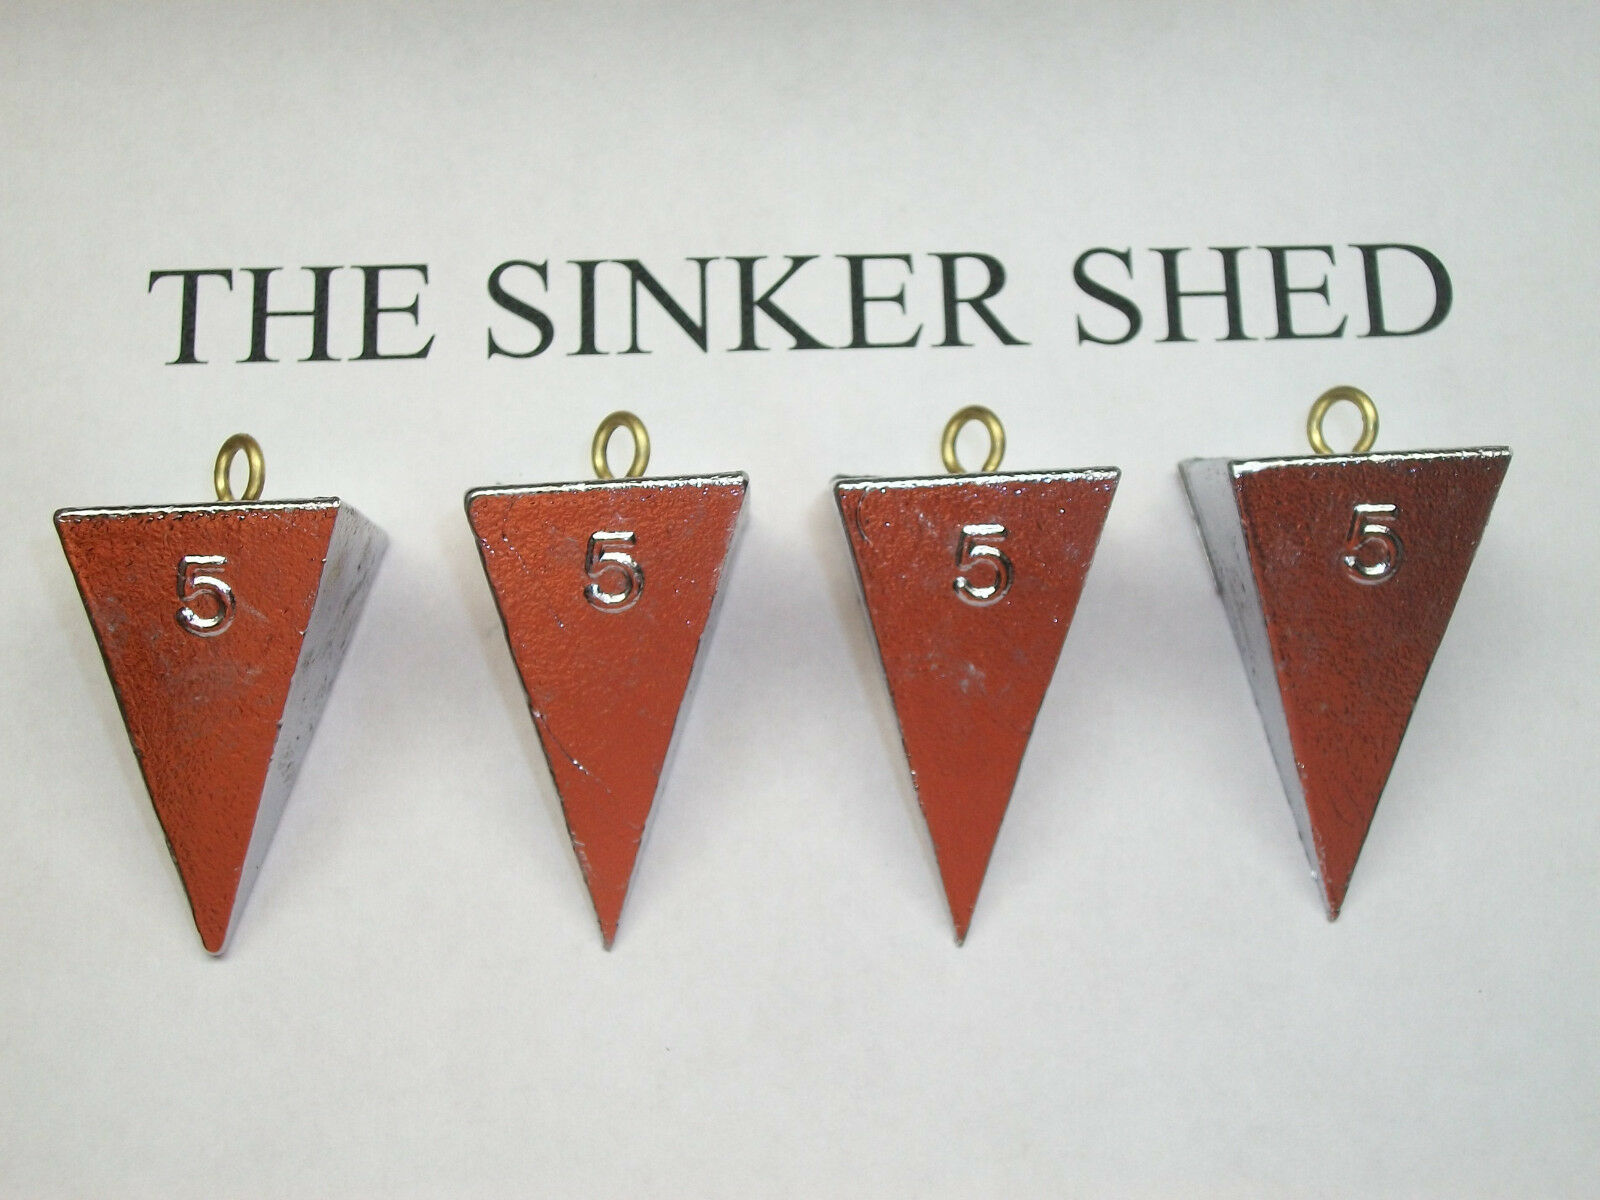 5 oz pyramid sinkers - choose quantity  6 12 25 50 100 - FREE SHIPPING  find your favorite here